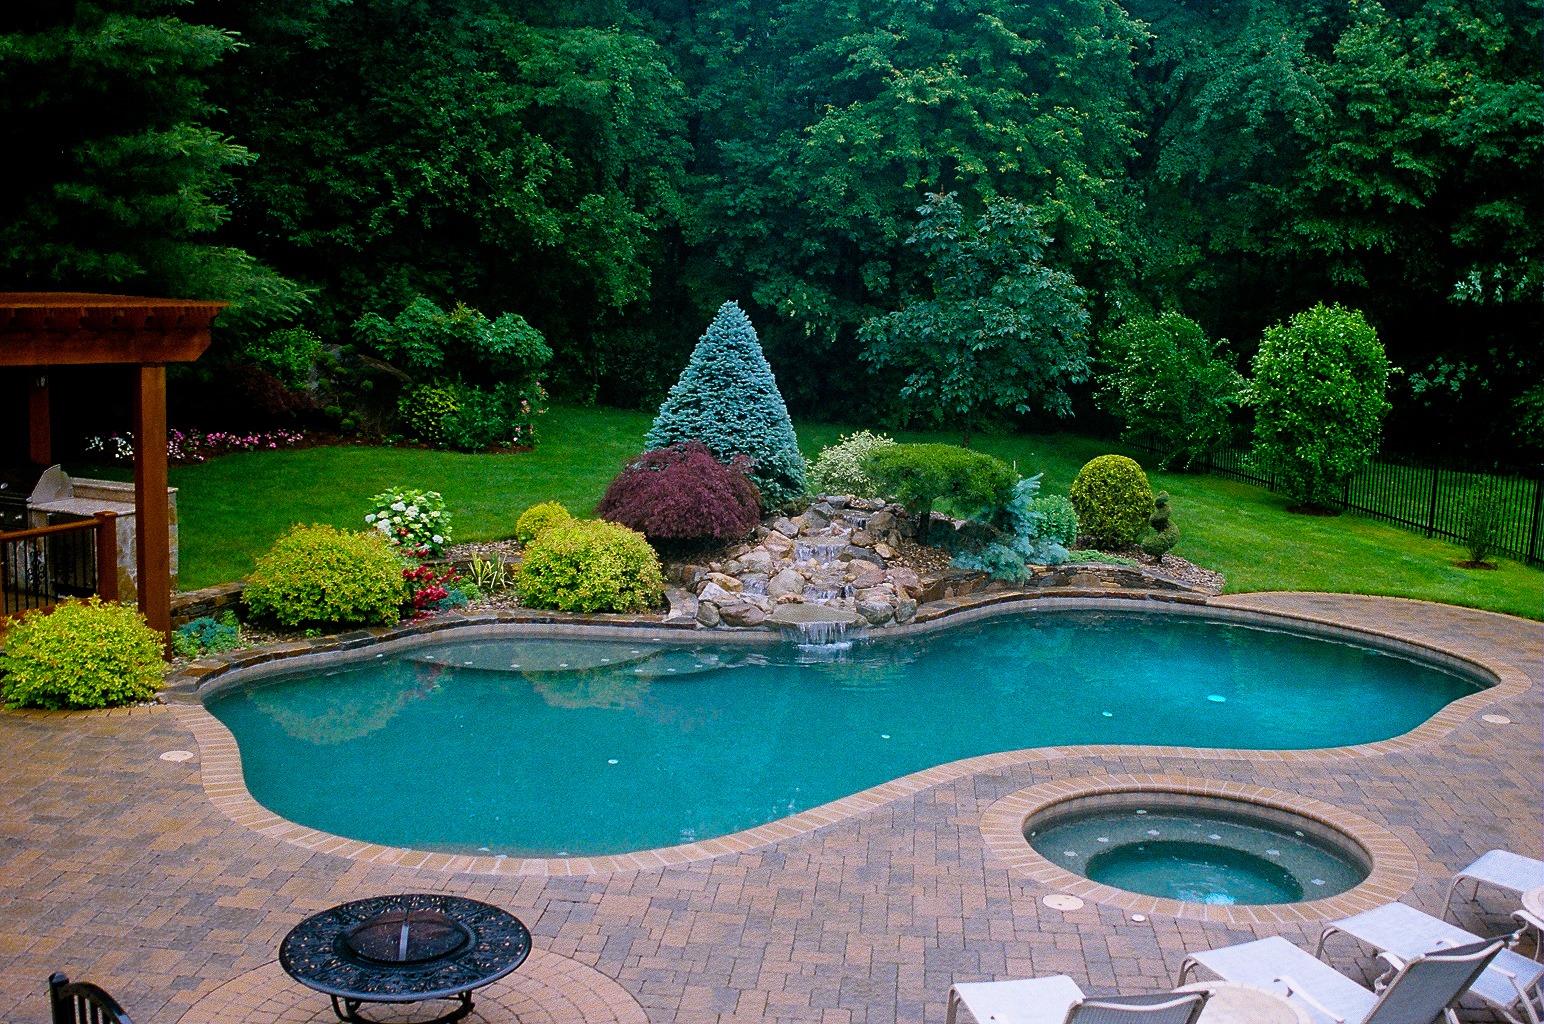 Retaining wall around pool swimming pools pinterest for Pool landscaping